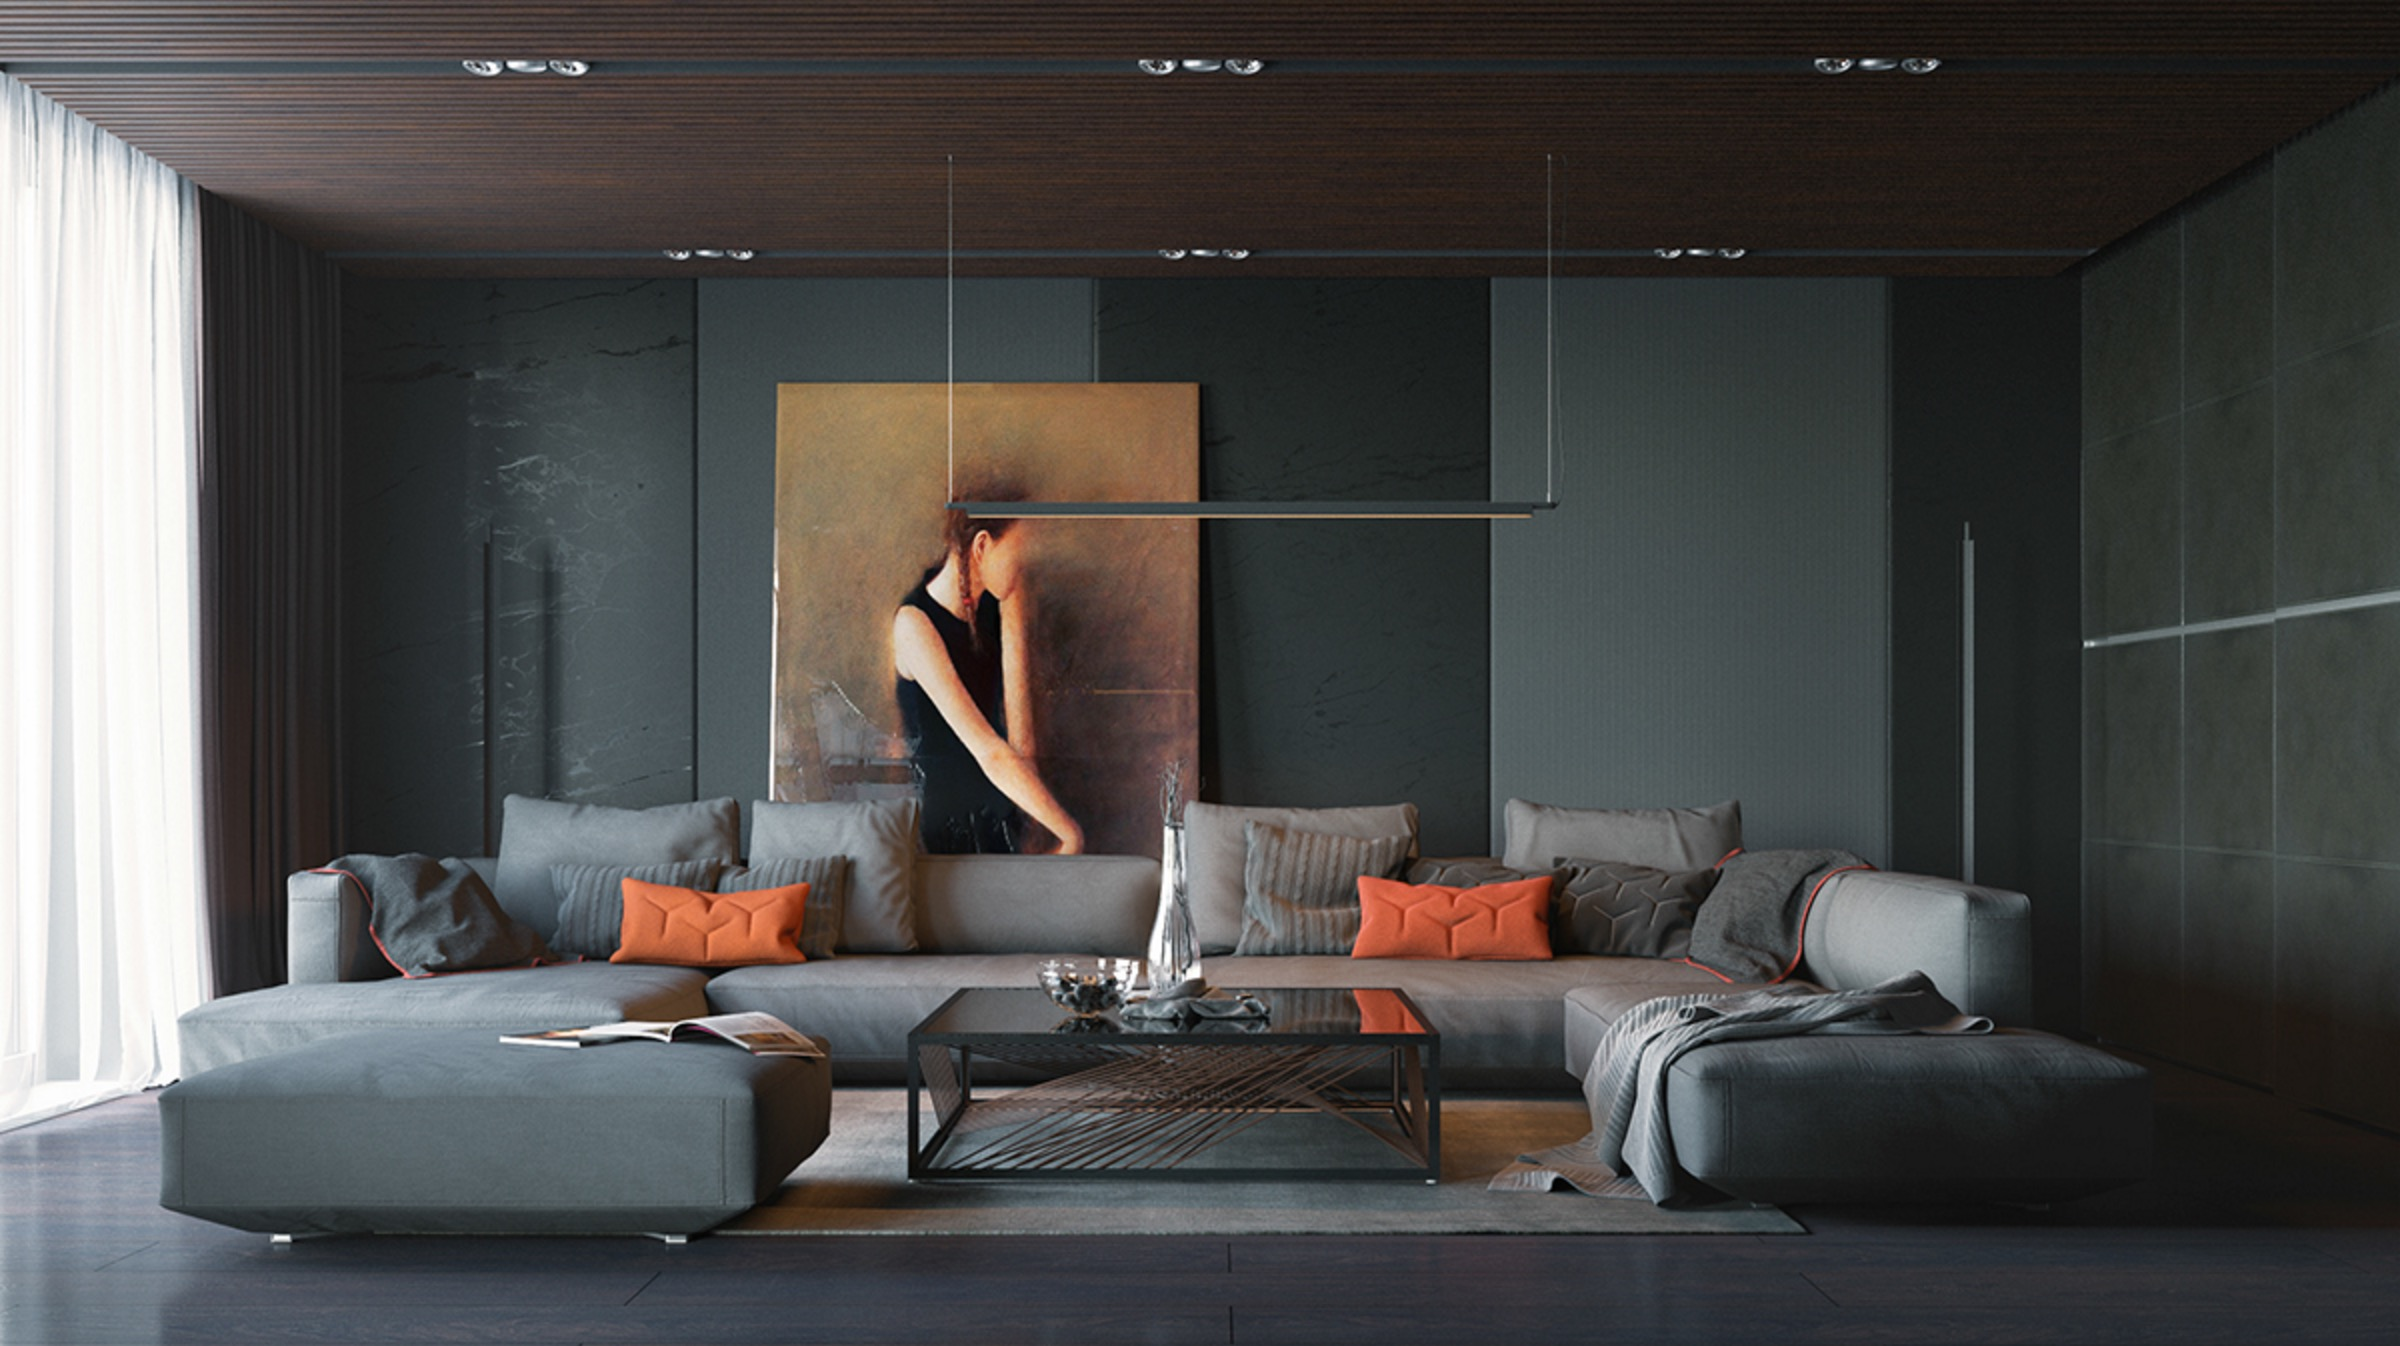 Dark Living Room Design Ideas With Sophisticated Decor Bring The ...